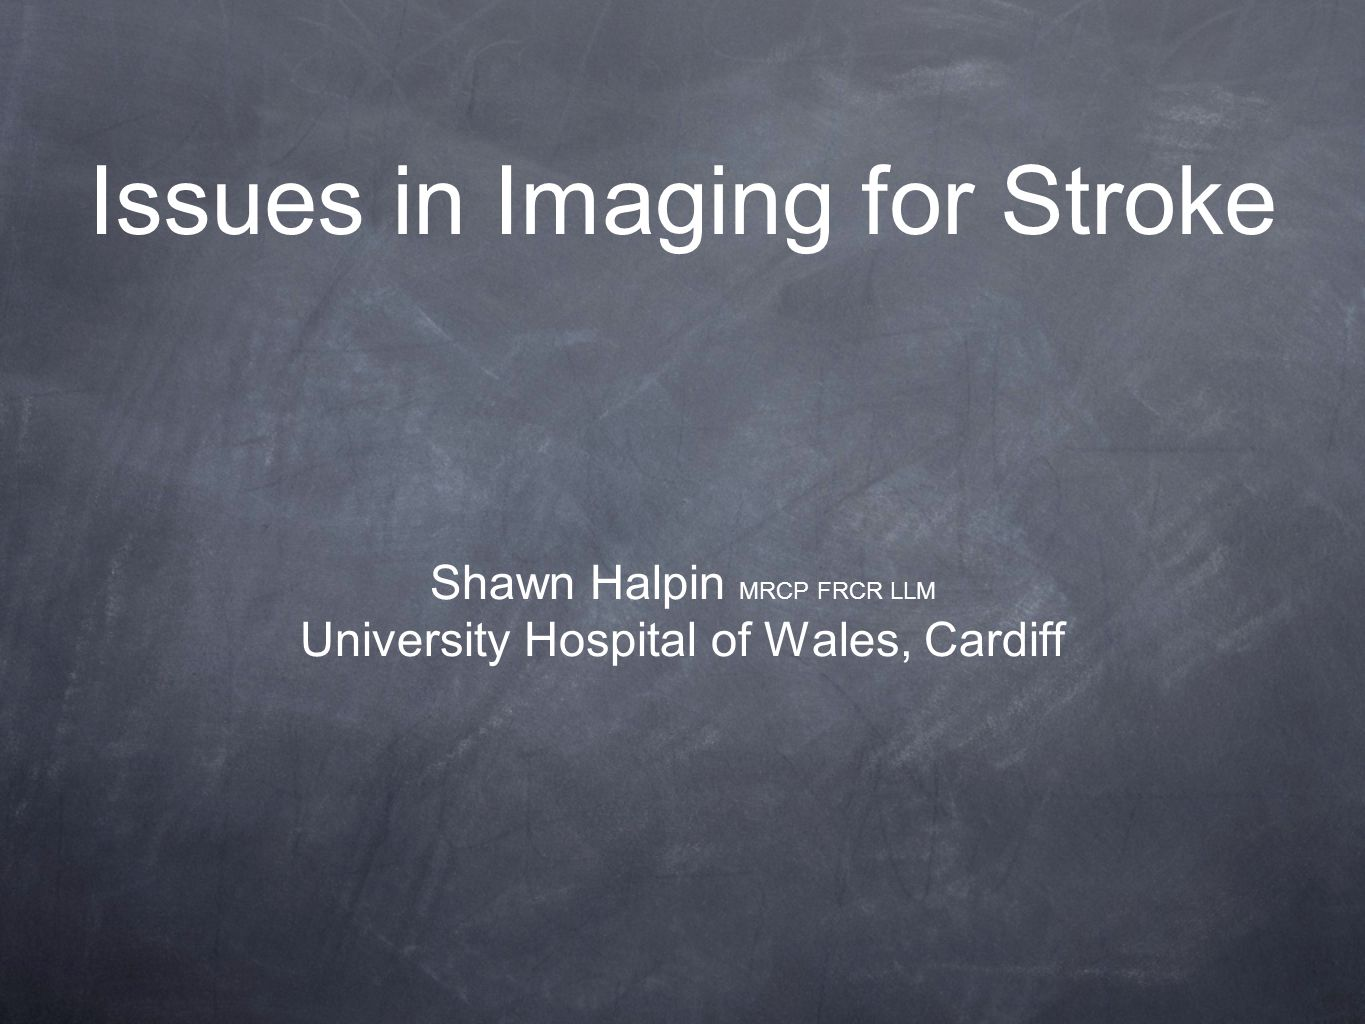 Issues in Imaging for Stroke Shawn Halpin MRCP FRCR LLM University Hospital of Wales, Cardiff